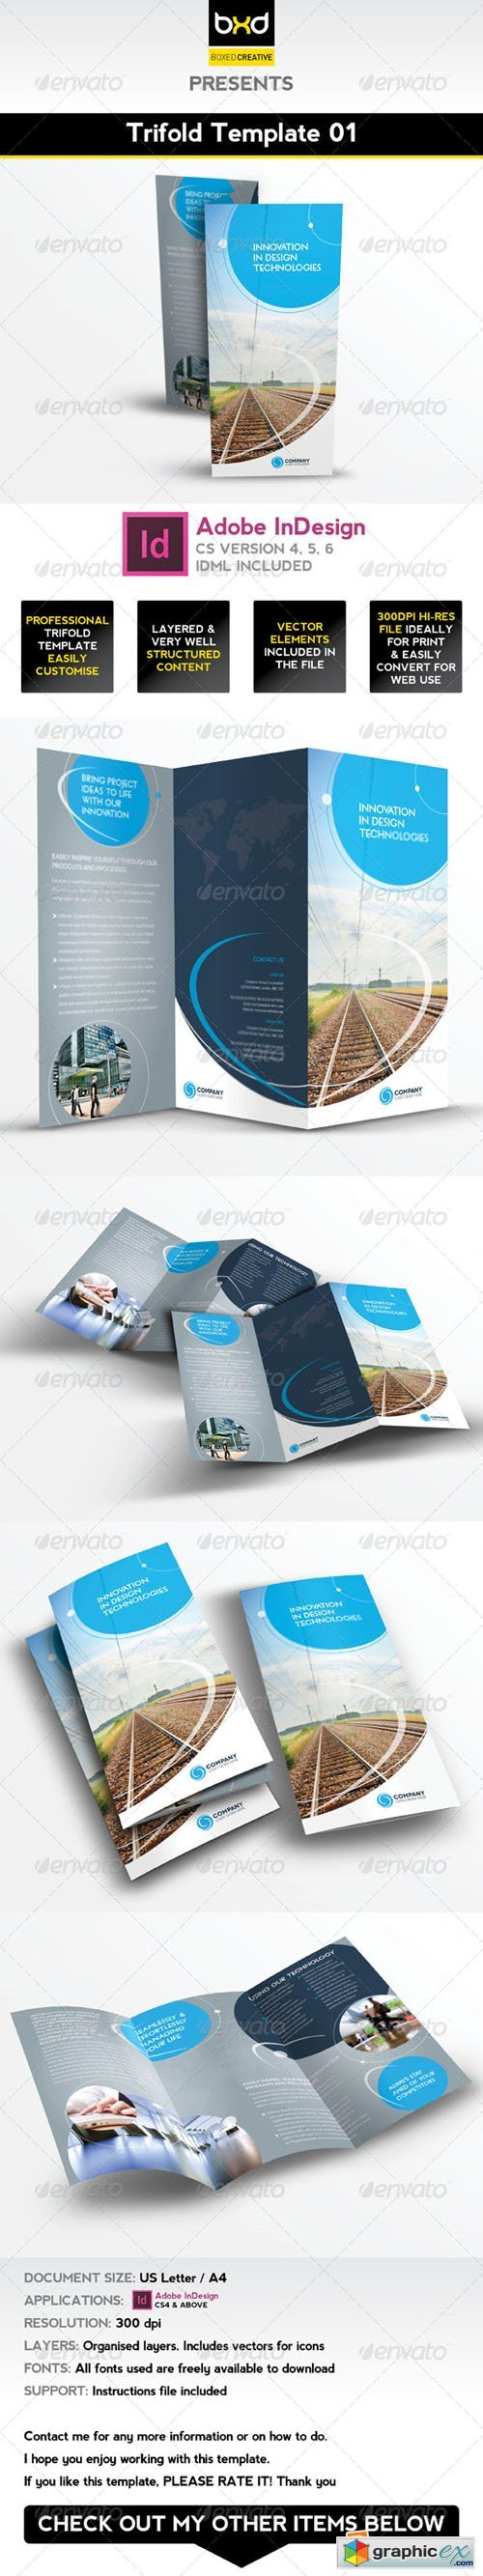 Trifold Brochure Template 01 - InDesign Layout 4476765